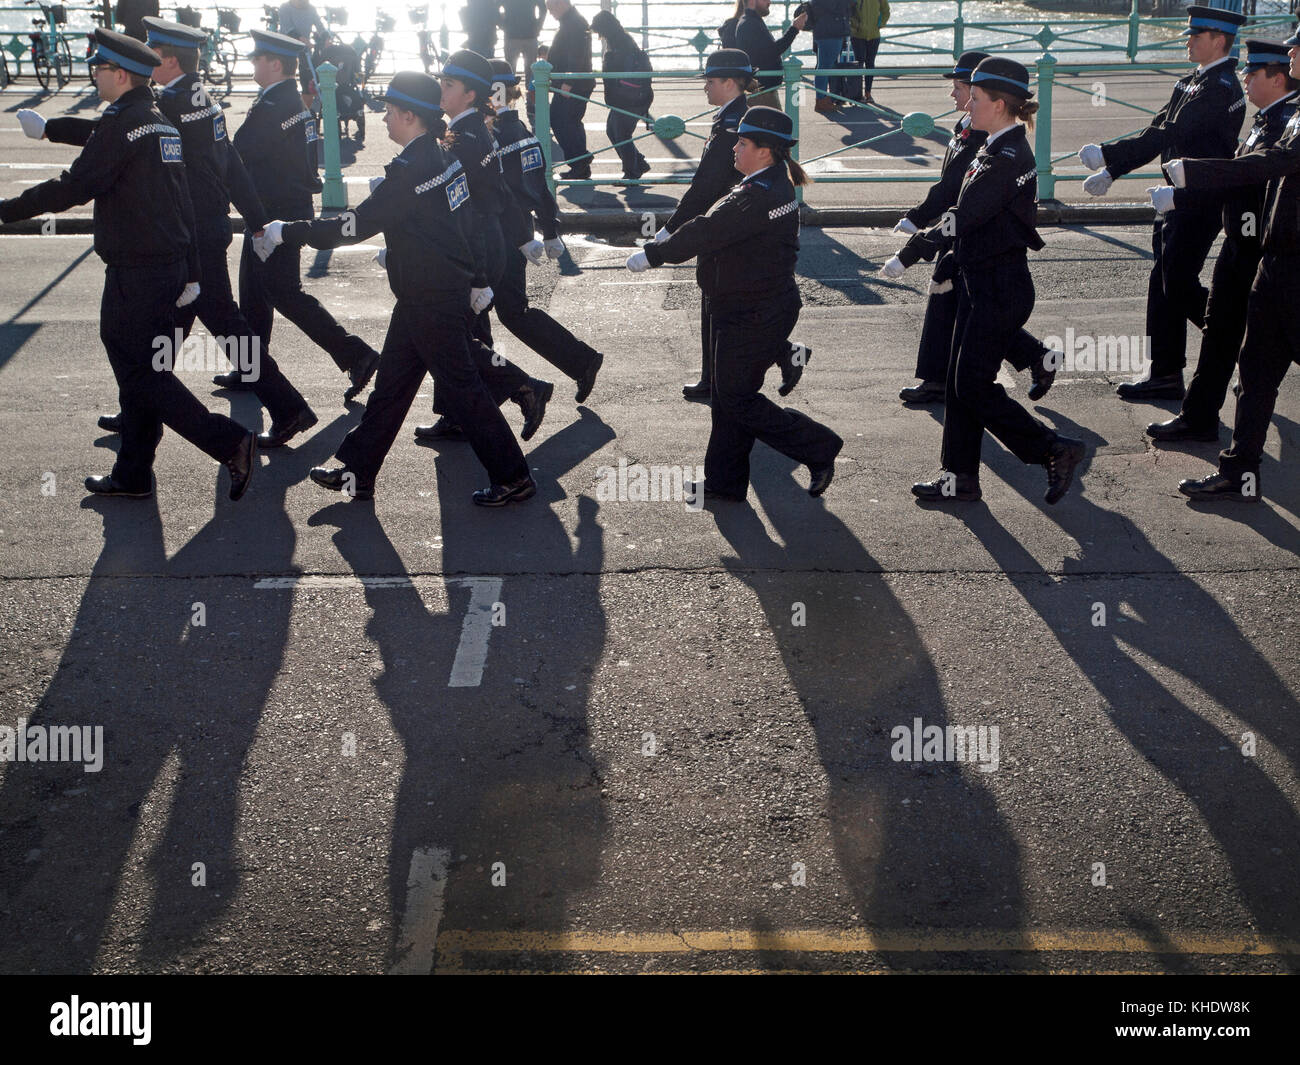 Police cadets march along the Brighton seafront on Remembrance Day - Stock Image